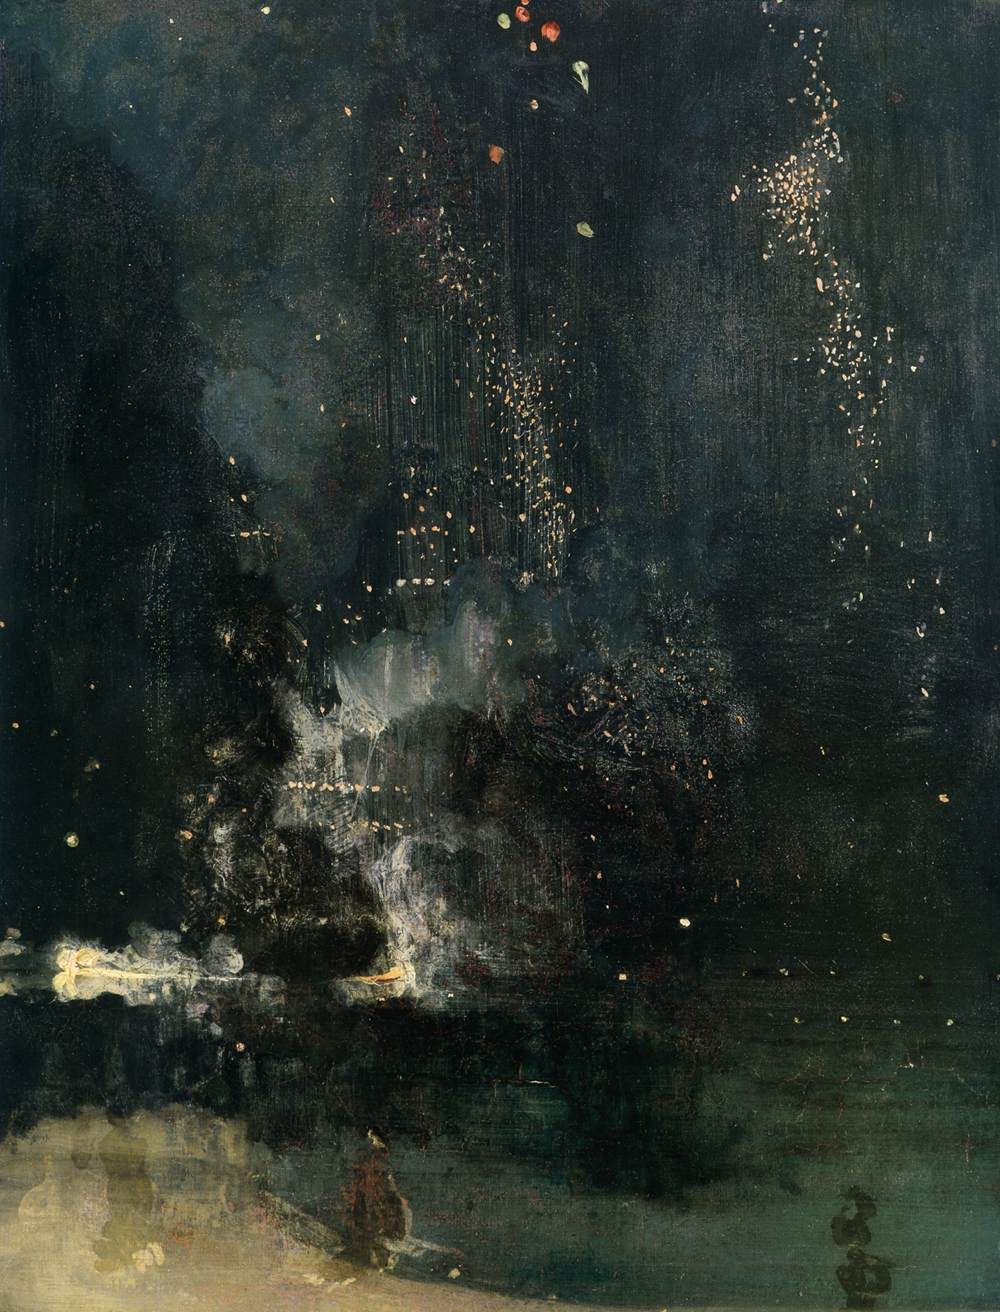 James McNeill Whistler, Nocturne in Black and Gold- The Failing Rocket, 1875, Oil on canvas, 60 x 47 cm, Phillips Collection, Washinton